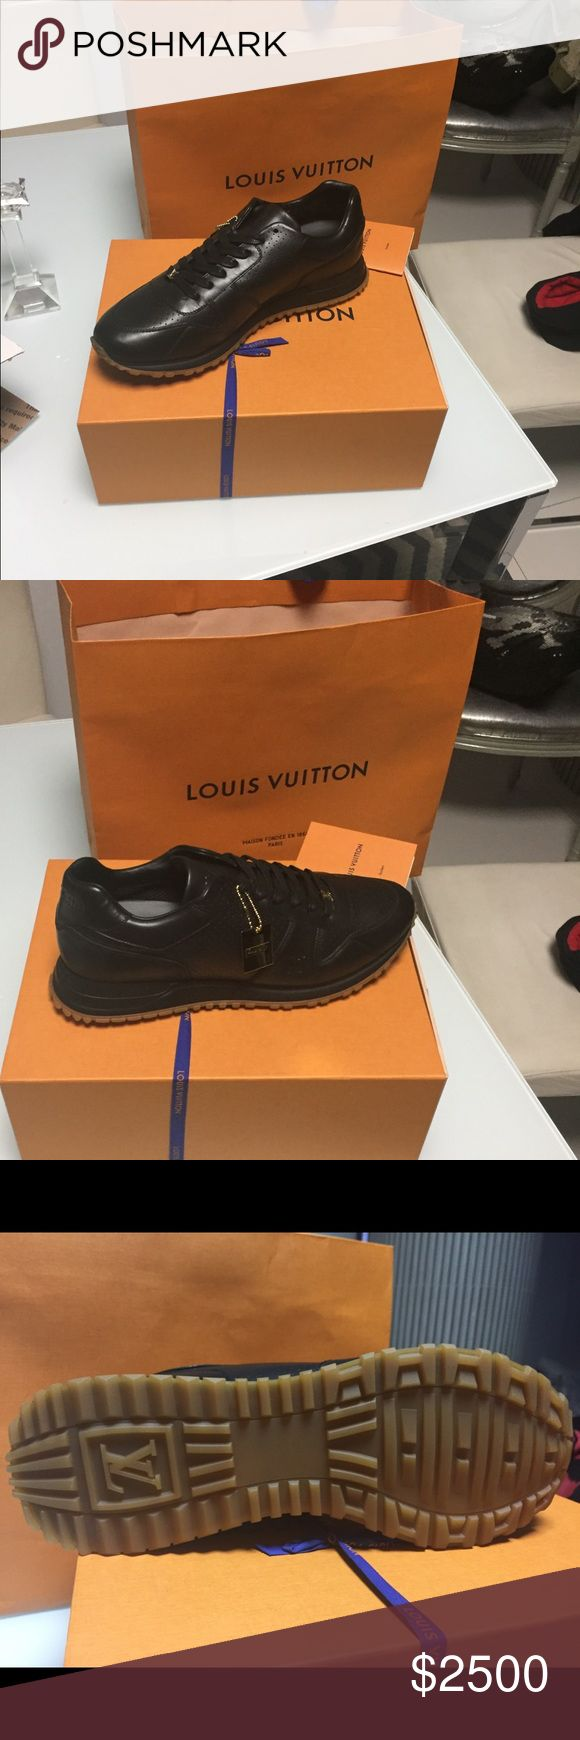 Louis Vuitton Supreme runaway sneaker black Size 11 never been worn - original tags/bags/box Louis Vuitton size 44 UK Louis Vuitton Shoes Sneakers